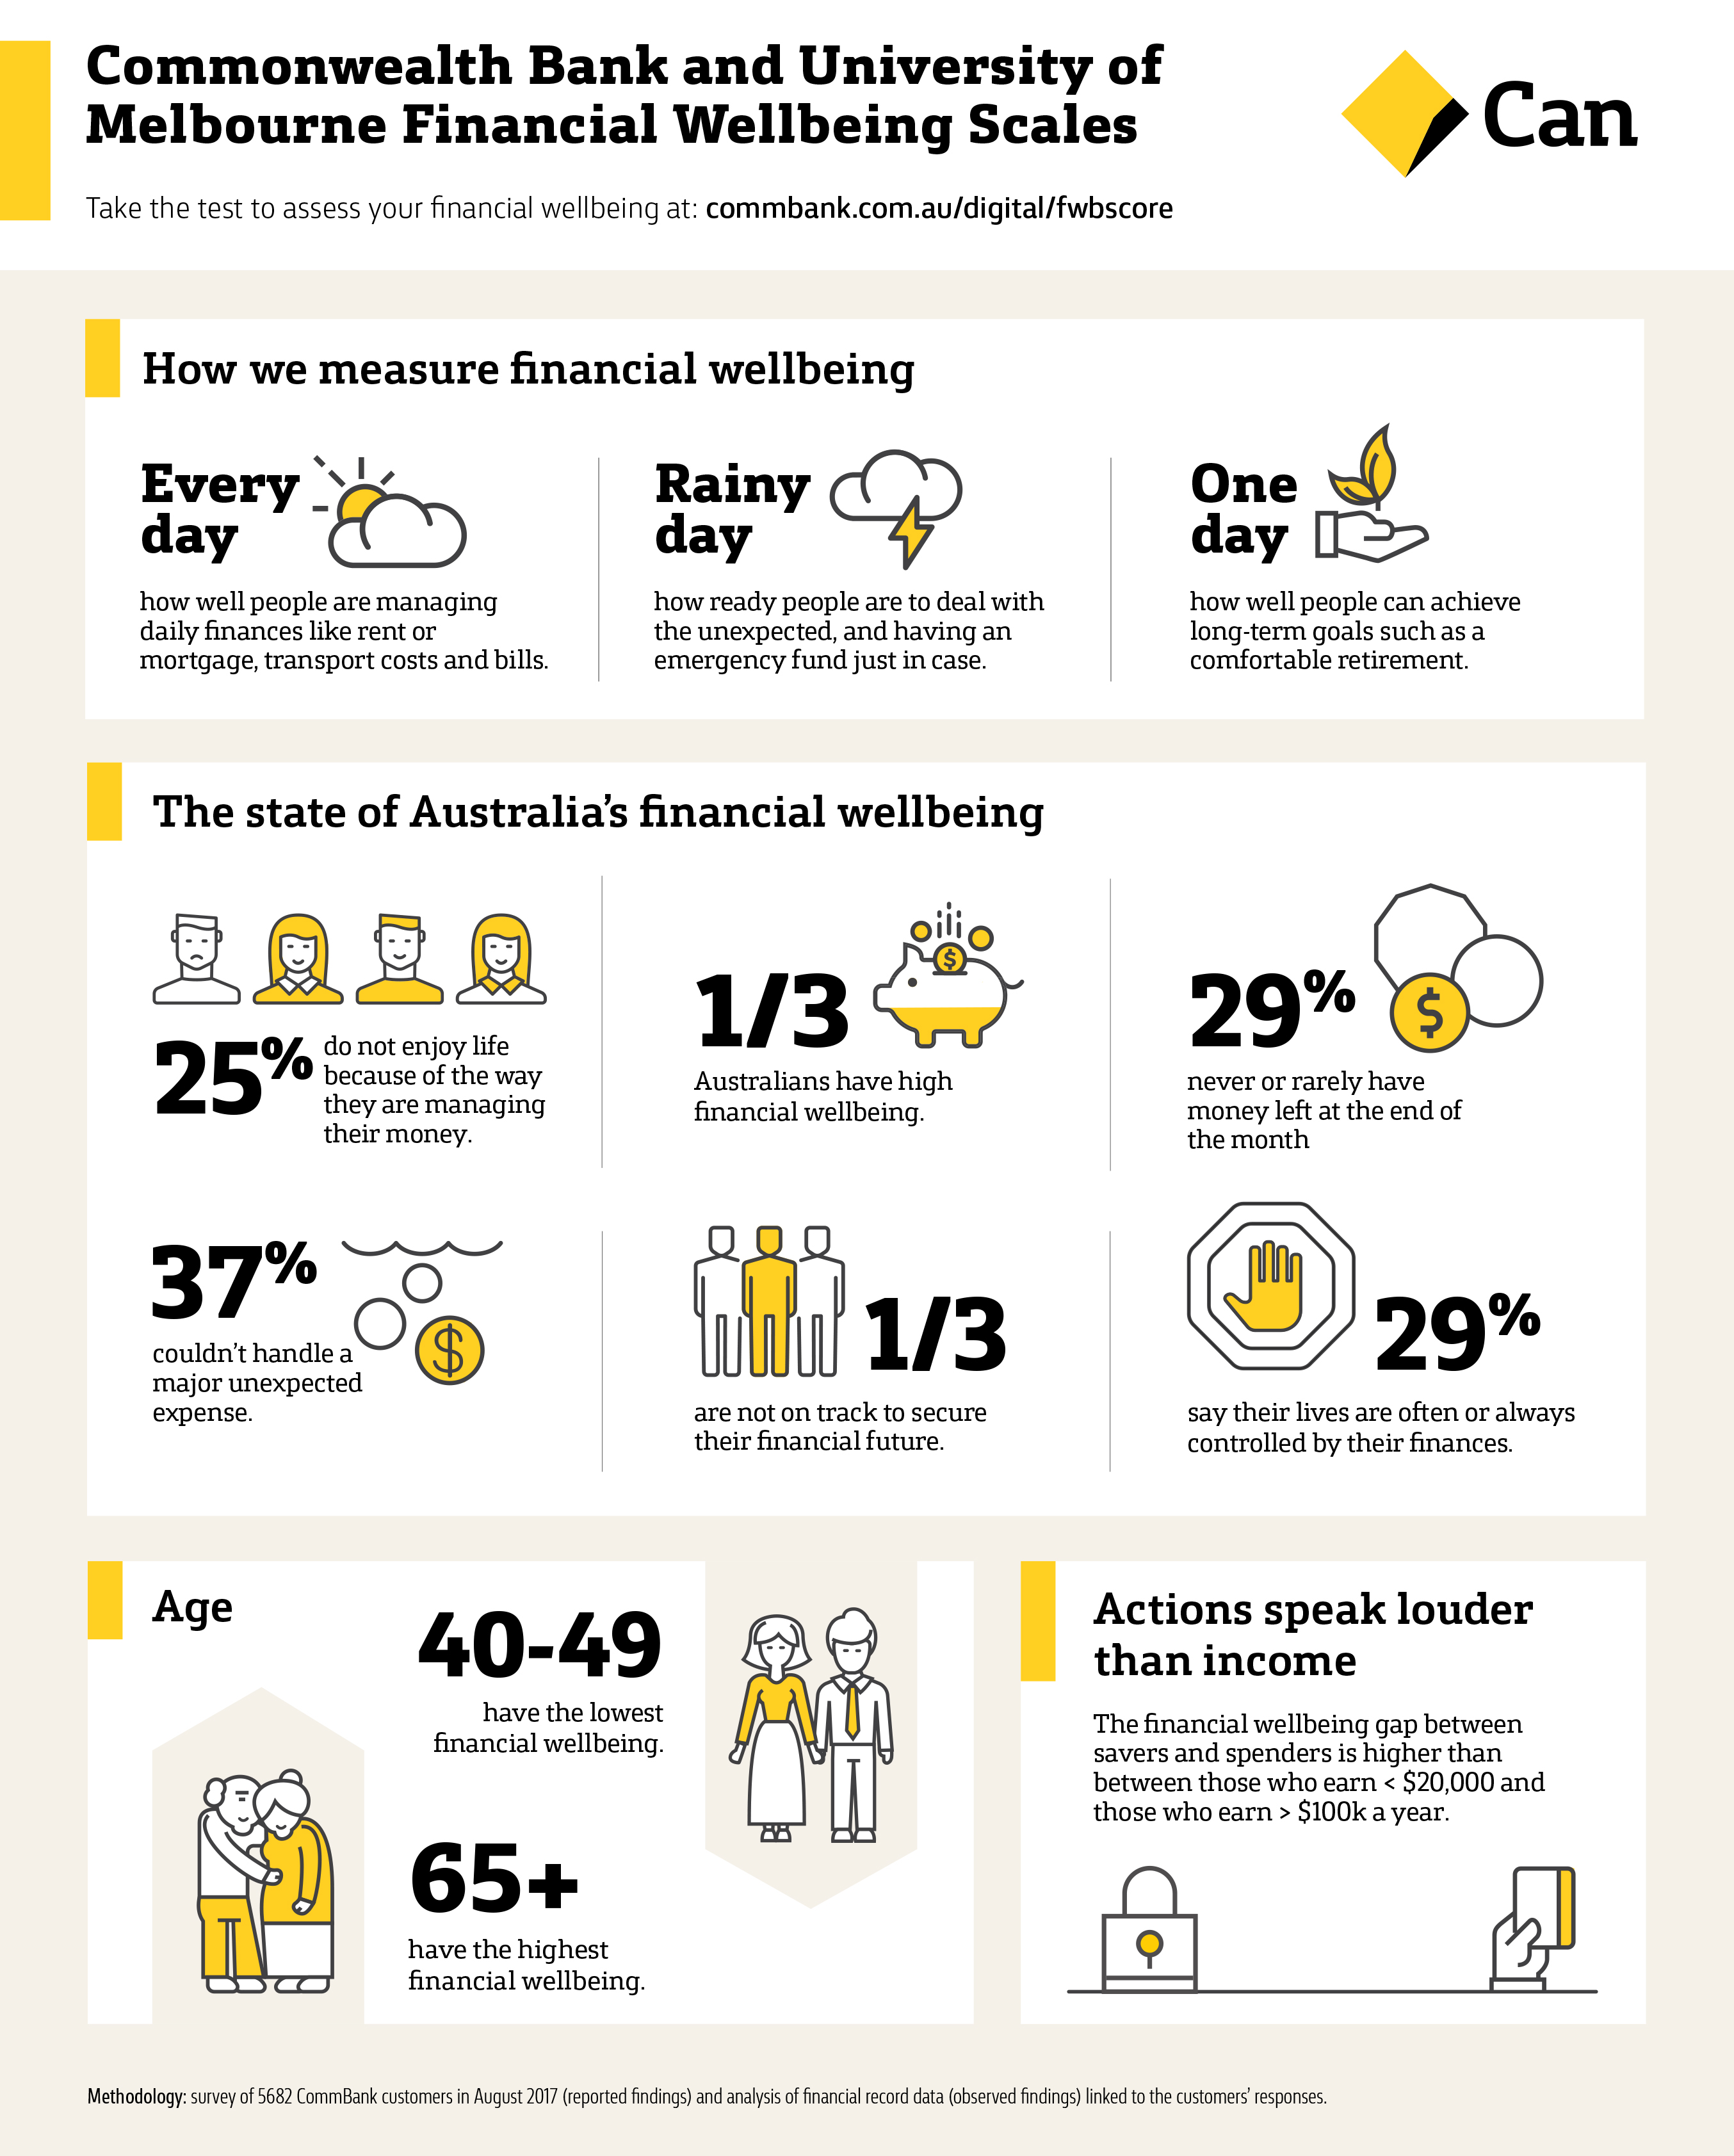 Financial wellbeing scales